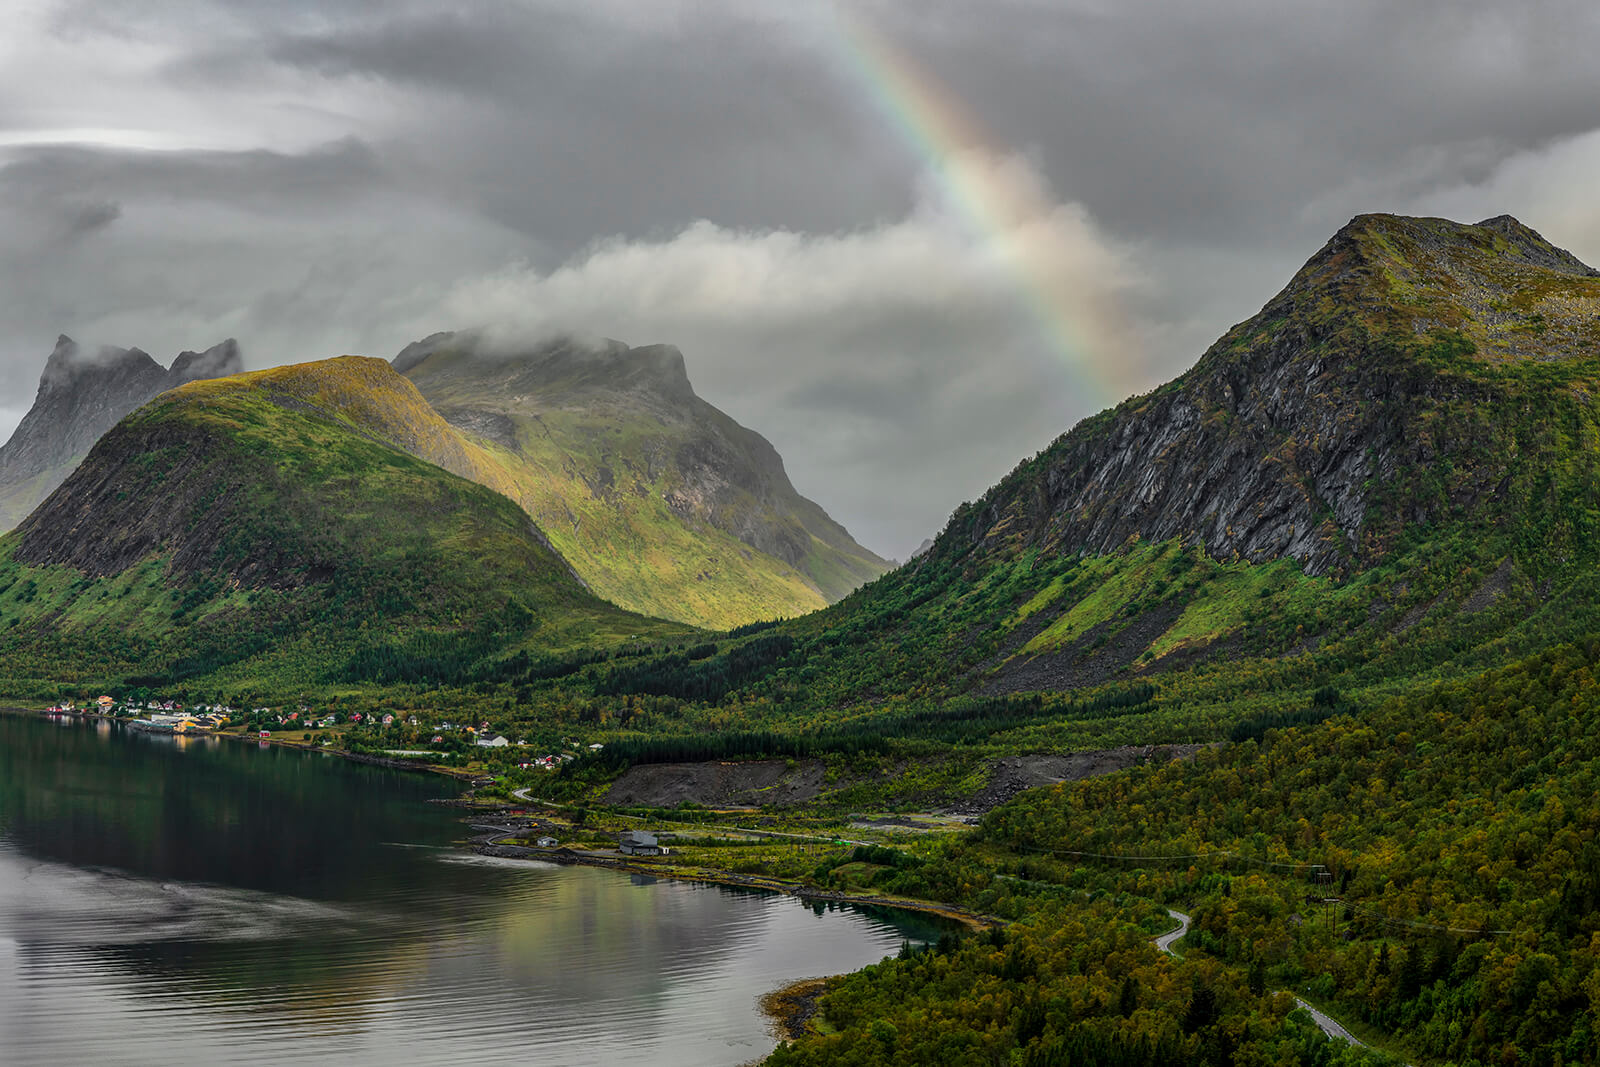 Rainbow over Bergsbotn by Joakim Jormelin